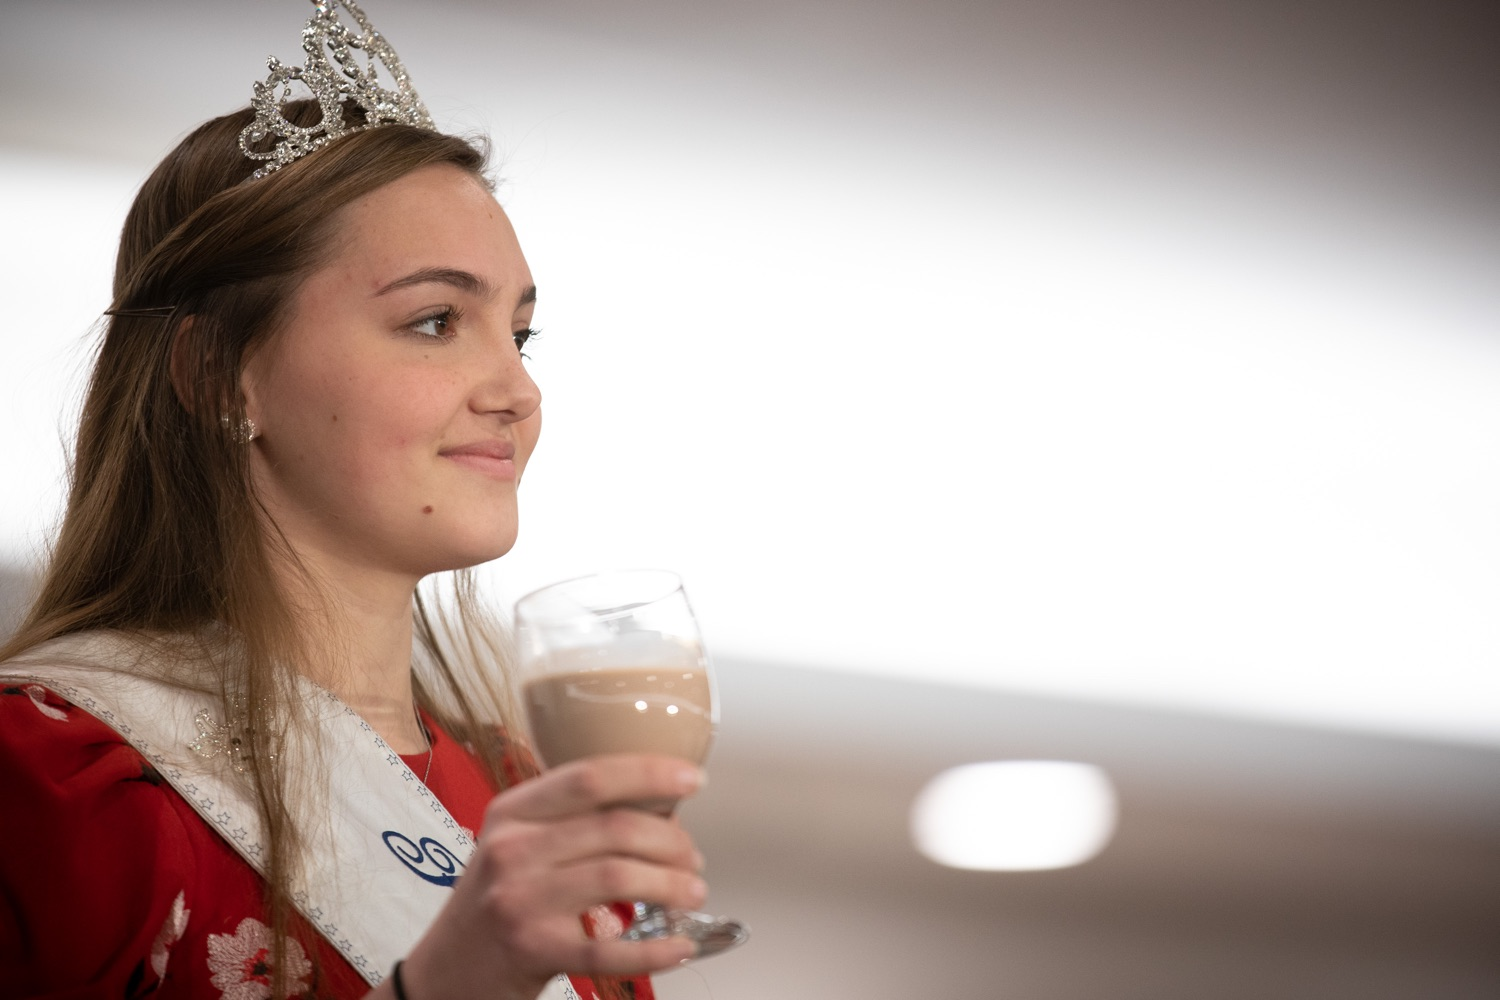 """<a href=""""https://filesource.wostreaming.net/commonwealthofpa/photo/17650_agric_public_officials_day_dz_003.jpg"""" target=""""_blank"""">⇣Download Photo<br></a>Paige Peiffer PA Dairy Princess offering up the Milk Toast at Public Officials Day.  Addressing nearly 800 public officials at the Pennsylvania Farm Show today, Agriculture Secretary Russell Redding announced the opening of the last grant program made possible by the 2019 PA Farm Bill. The $1 million Farm Vitality Grant Program aims to enhance the long-term health and vitality of Pennsylvanias family farms. Harrisburg, PA  January 08, 2020"""